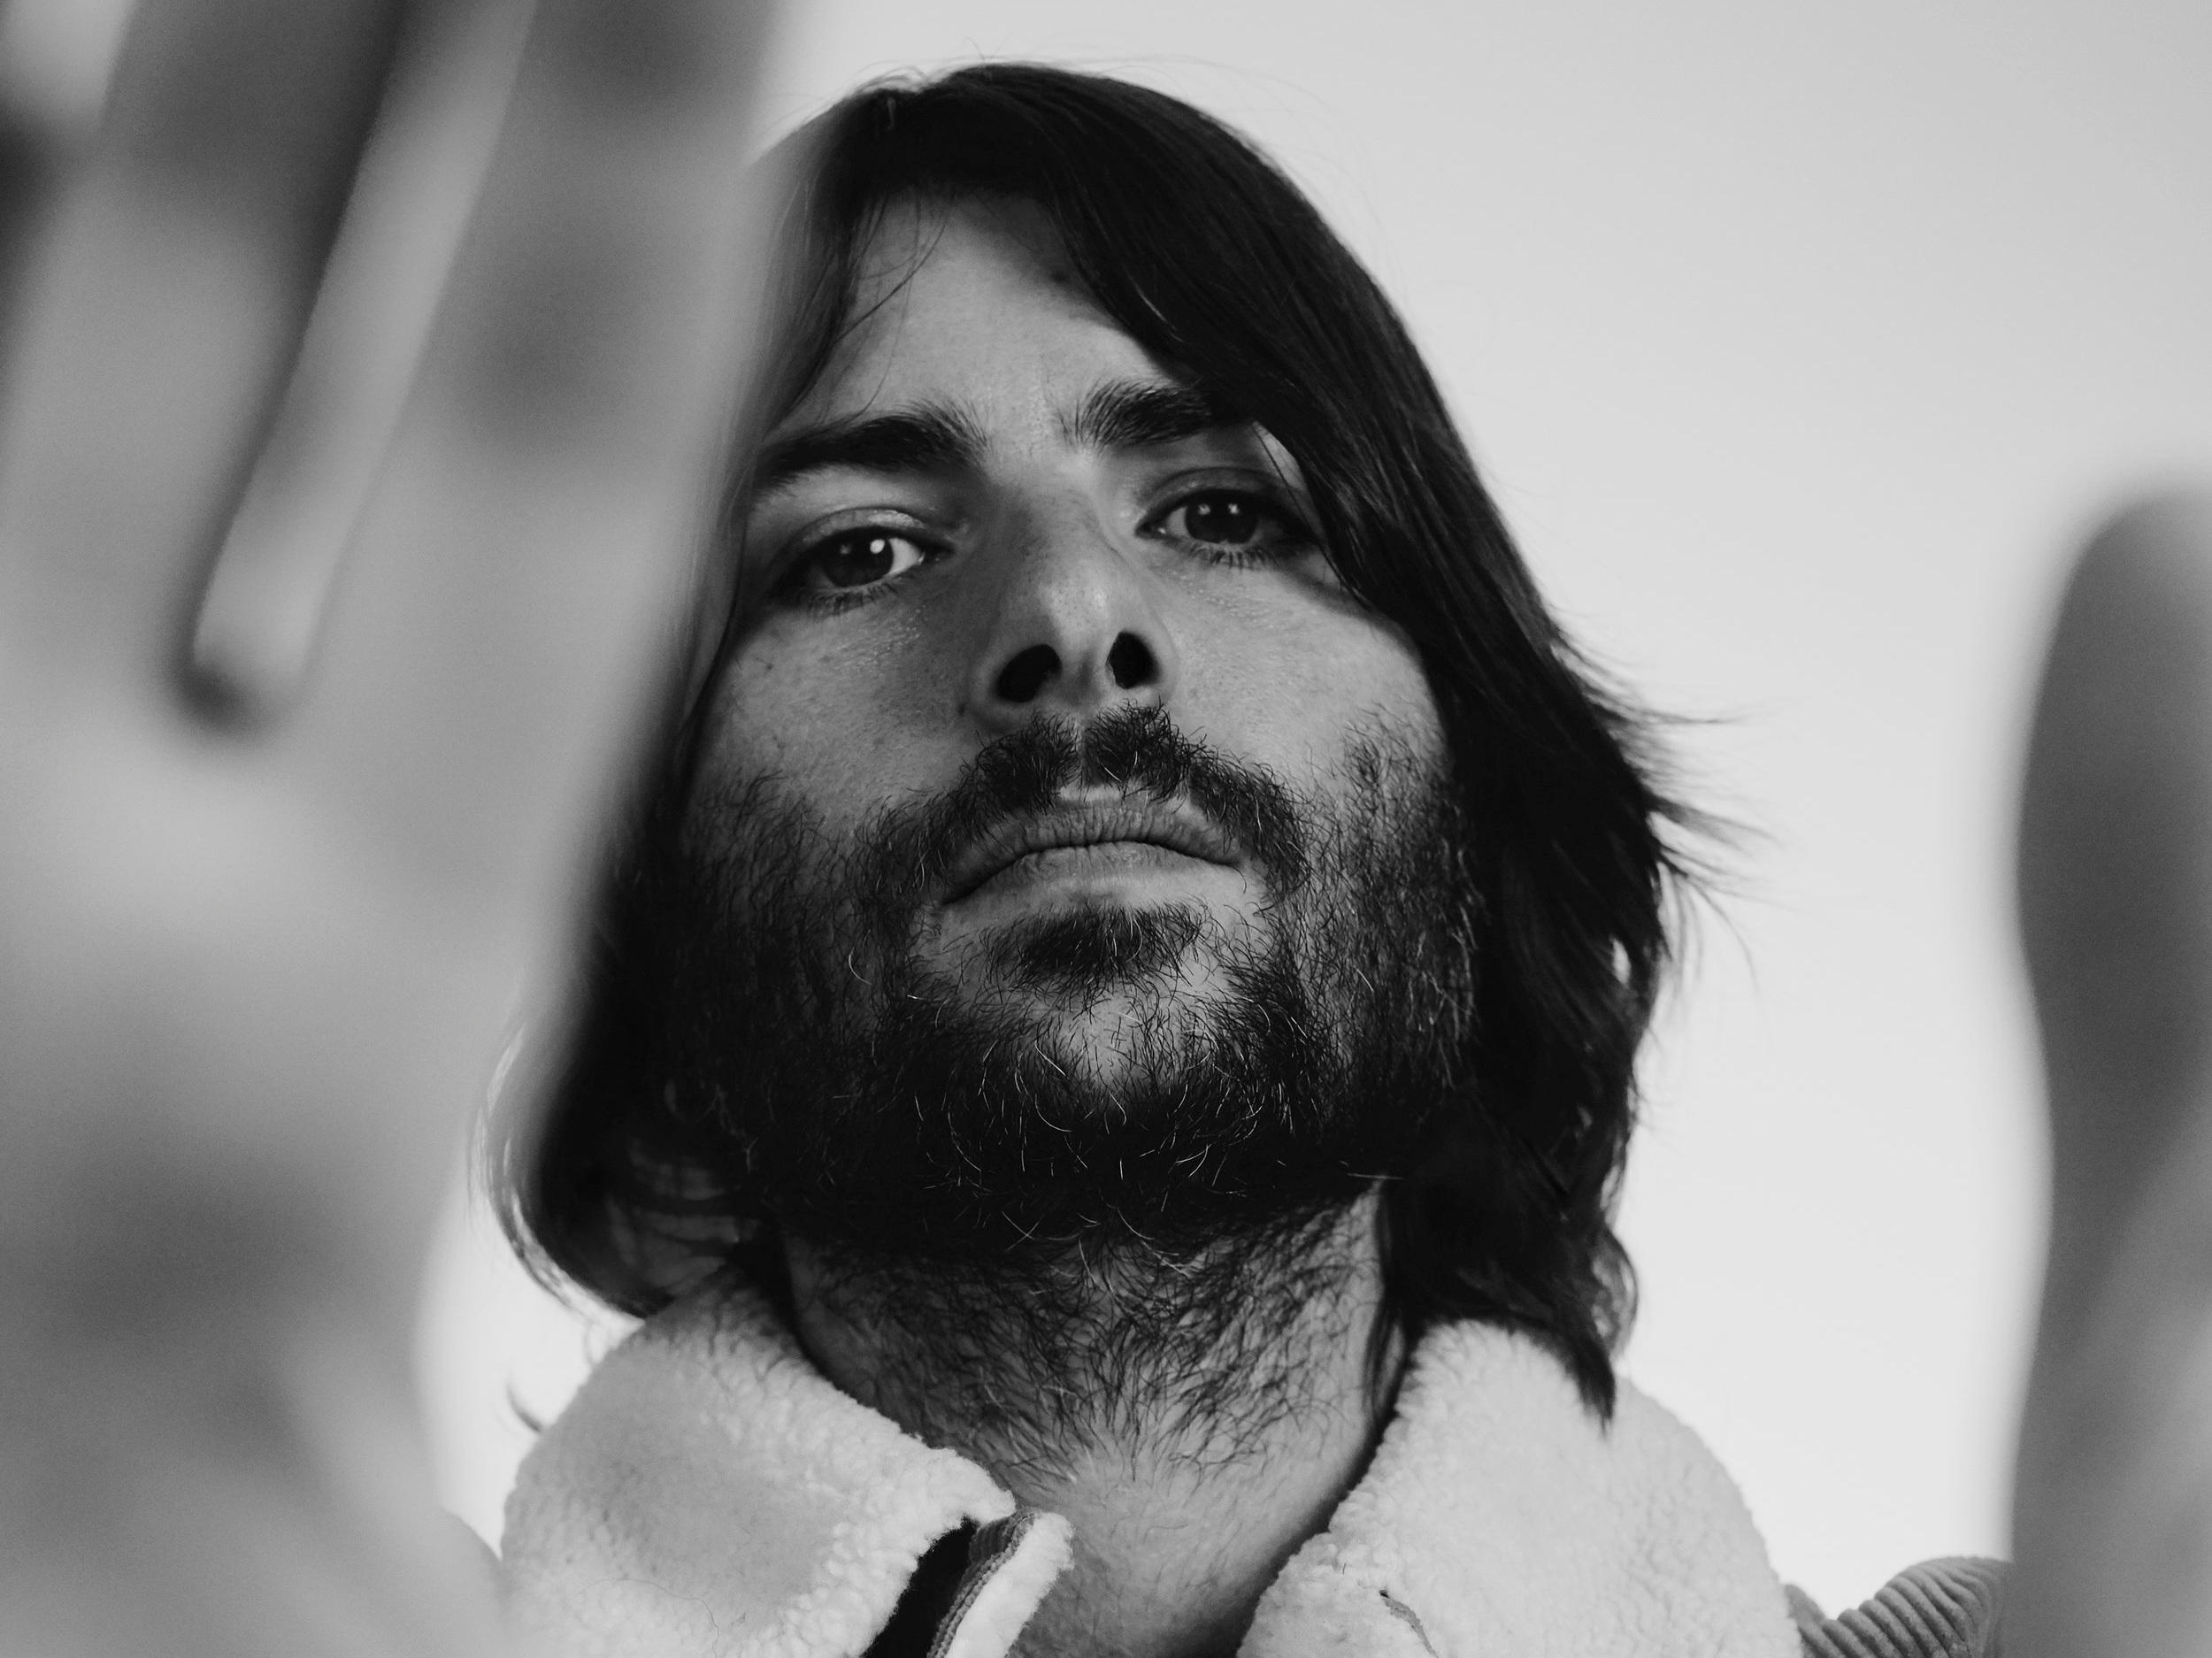 EXCLUSIVE: ROBERT SCHWARTZMAN